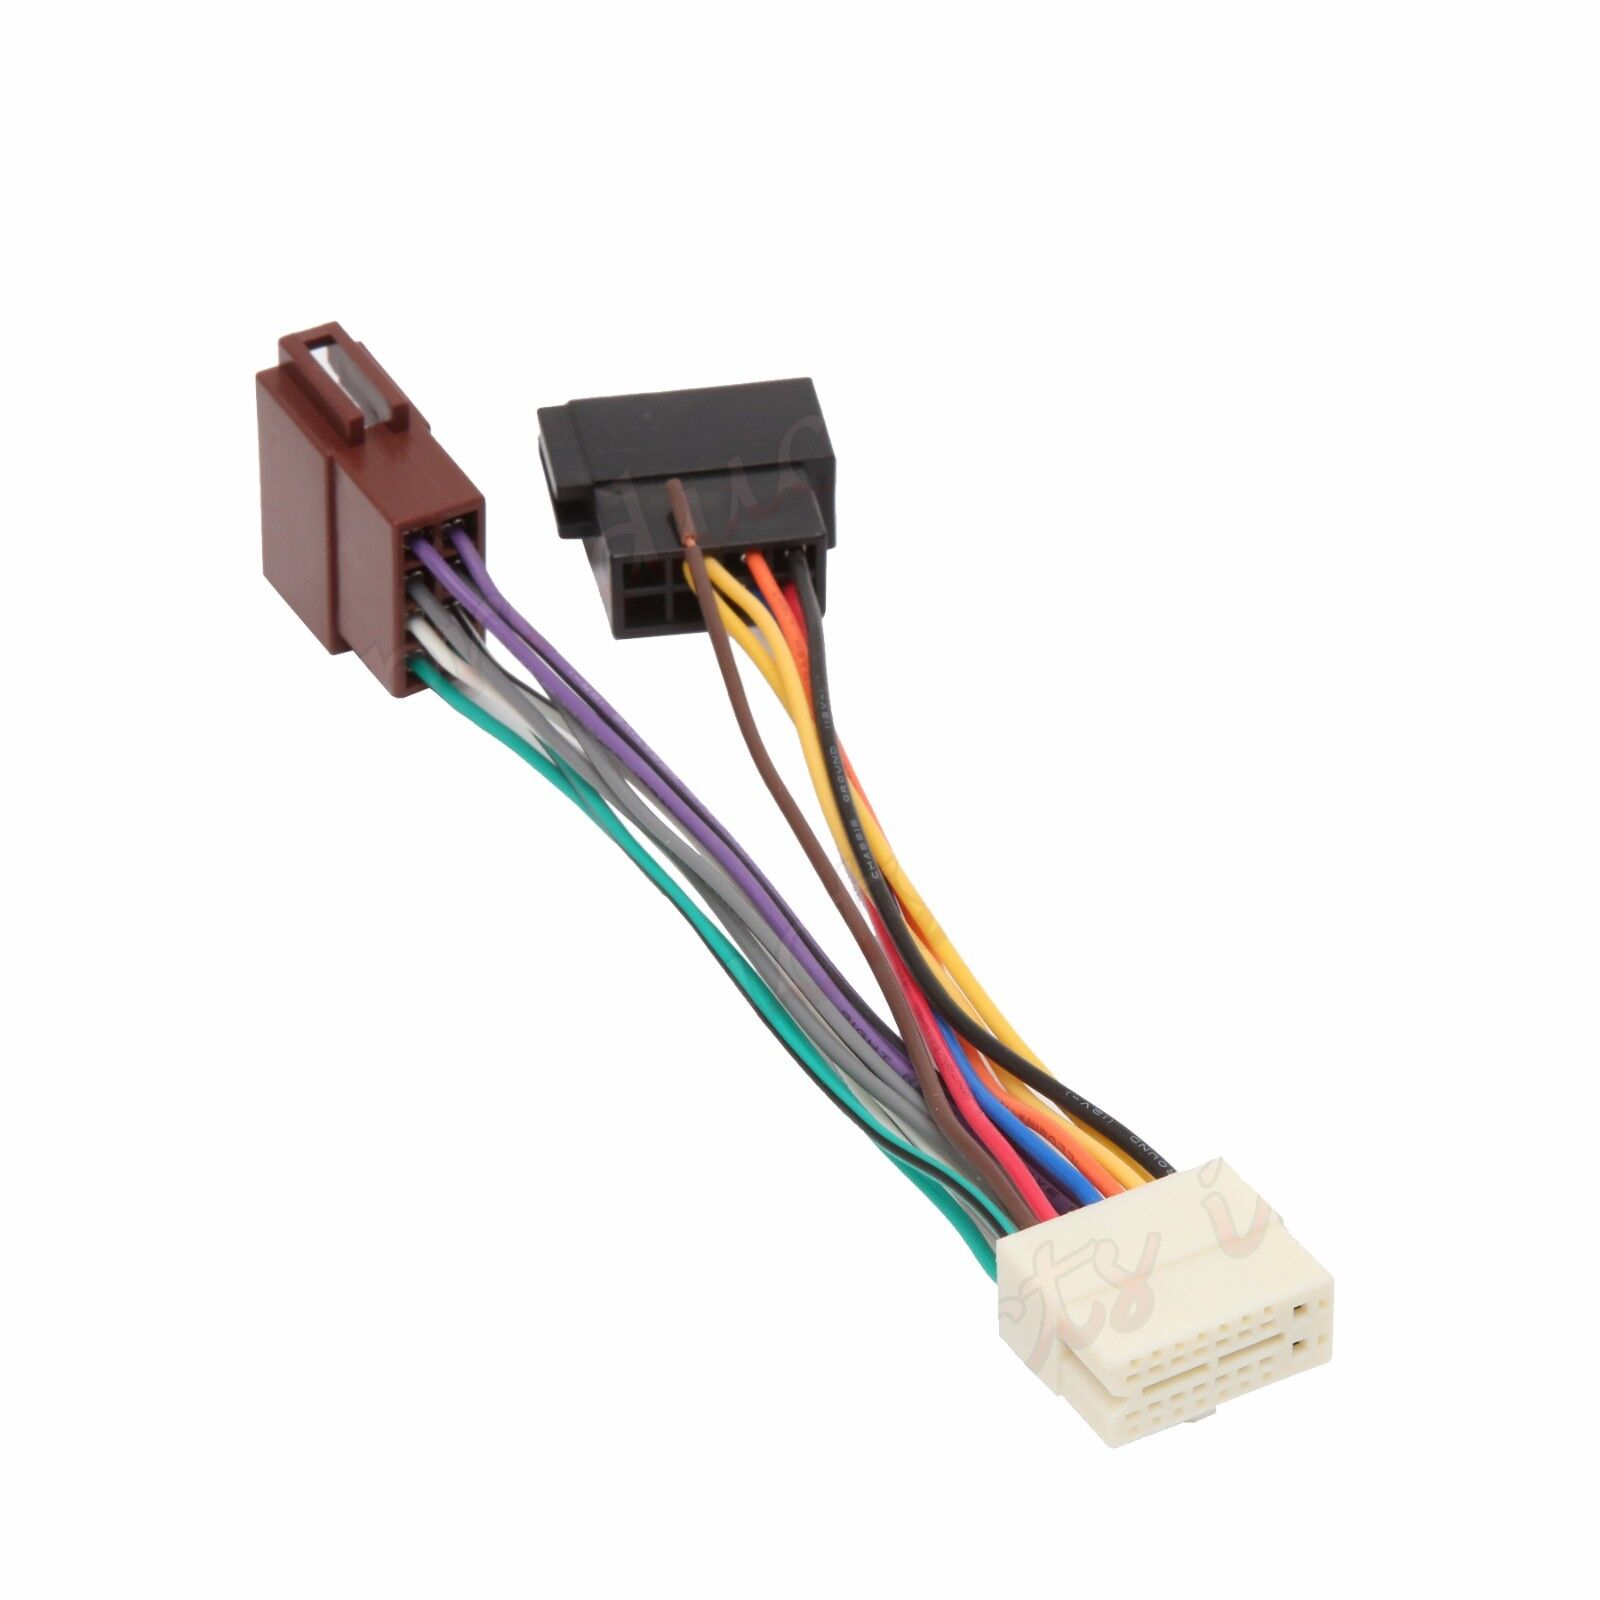 Harness Wire Clarion Rdx555d Wiring Diagram Libraries Nx604 Wires 16 Pin Car Stereo Radio Ebay Wiringclarion